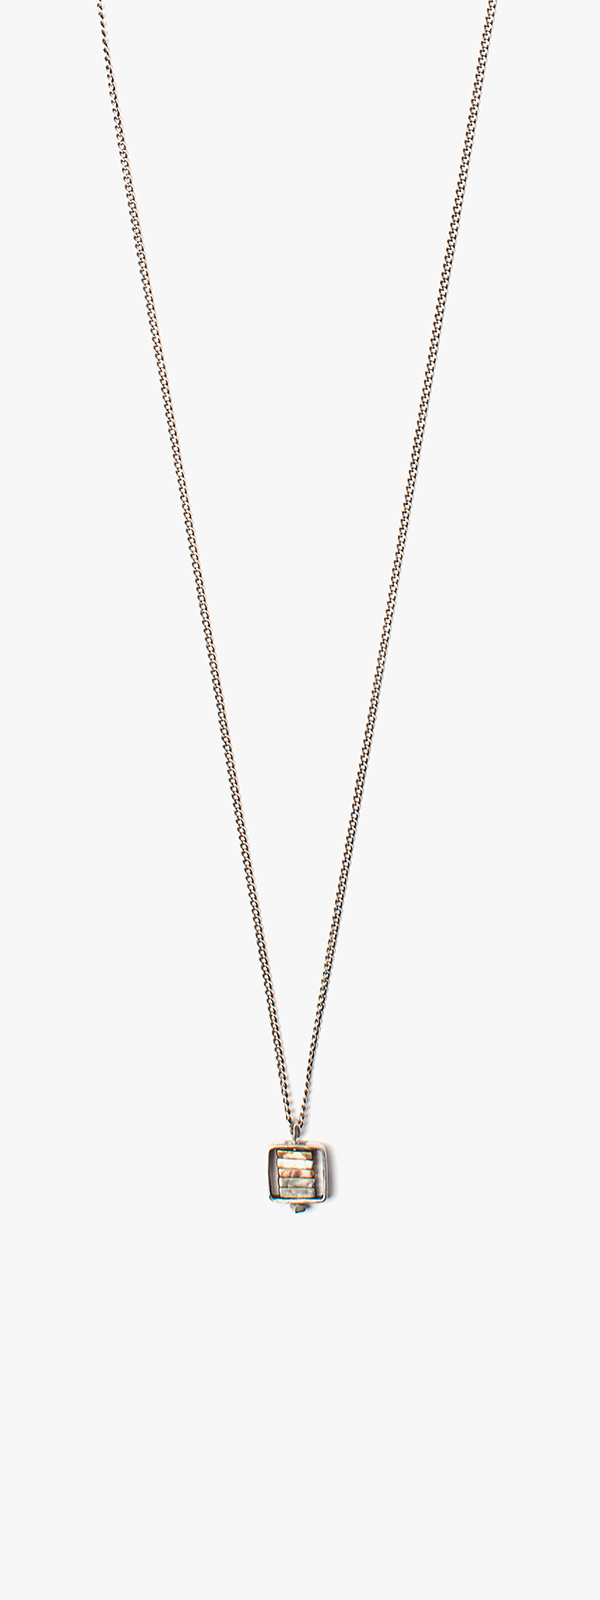 Rotating Bars Necklace